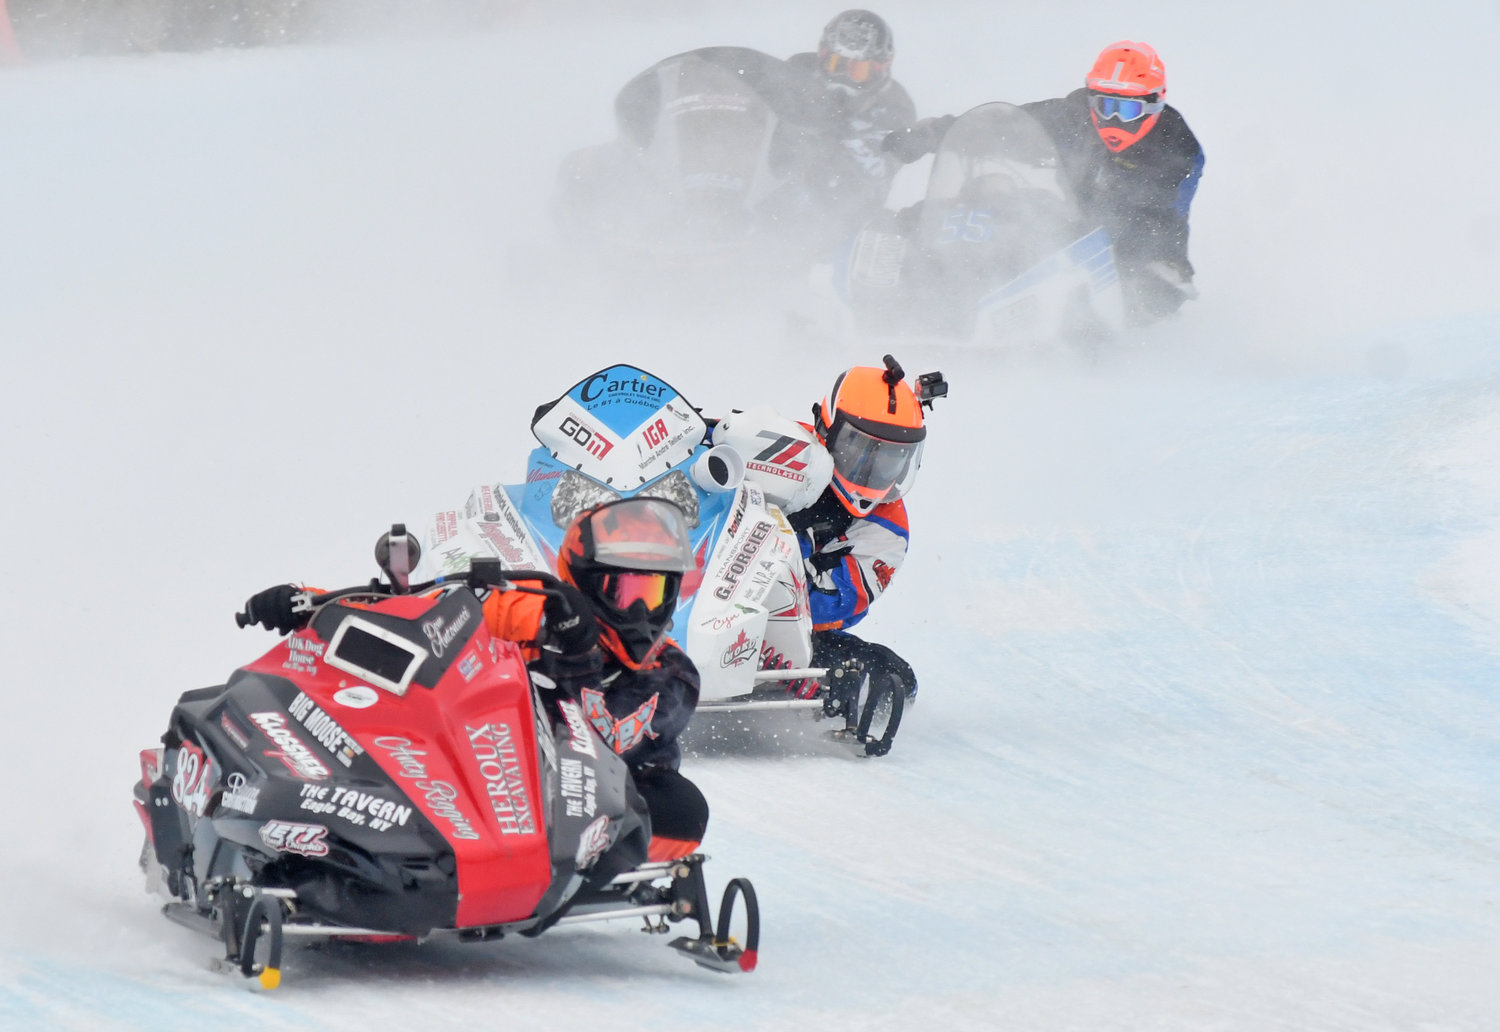 INTO THE TURN — Dominick Antonucci leads a group of sleds through turn four on Saturday at the Boonville Snow Festival. There were races for several levels of competitors at the Boonville Snow Festival over the weekend.